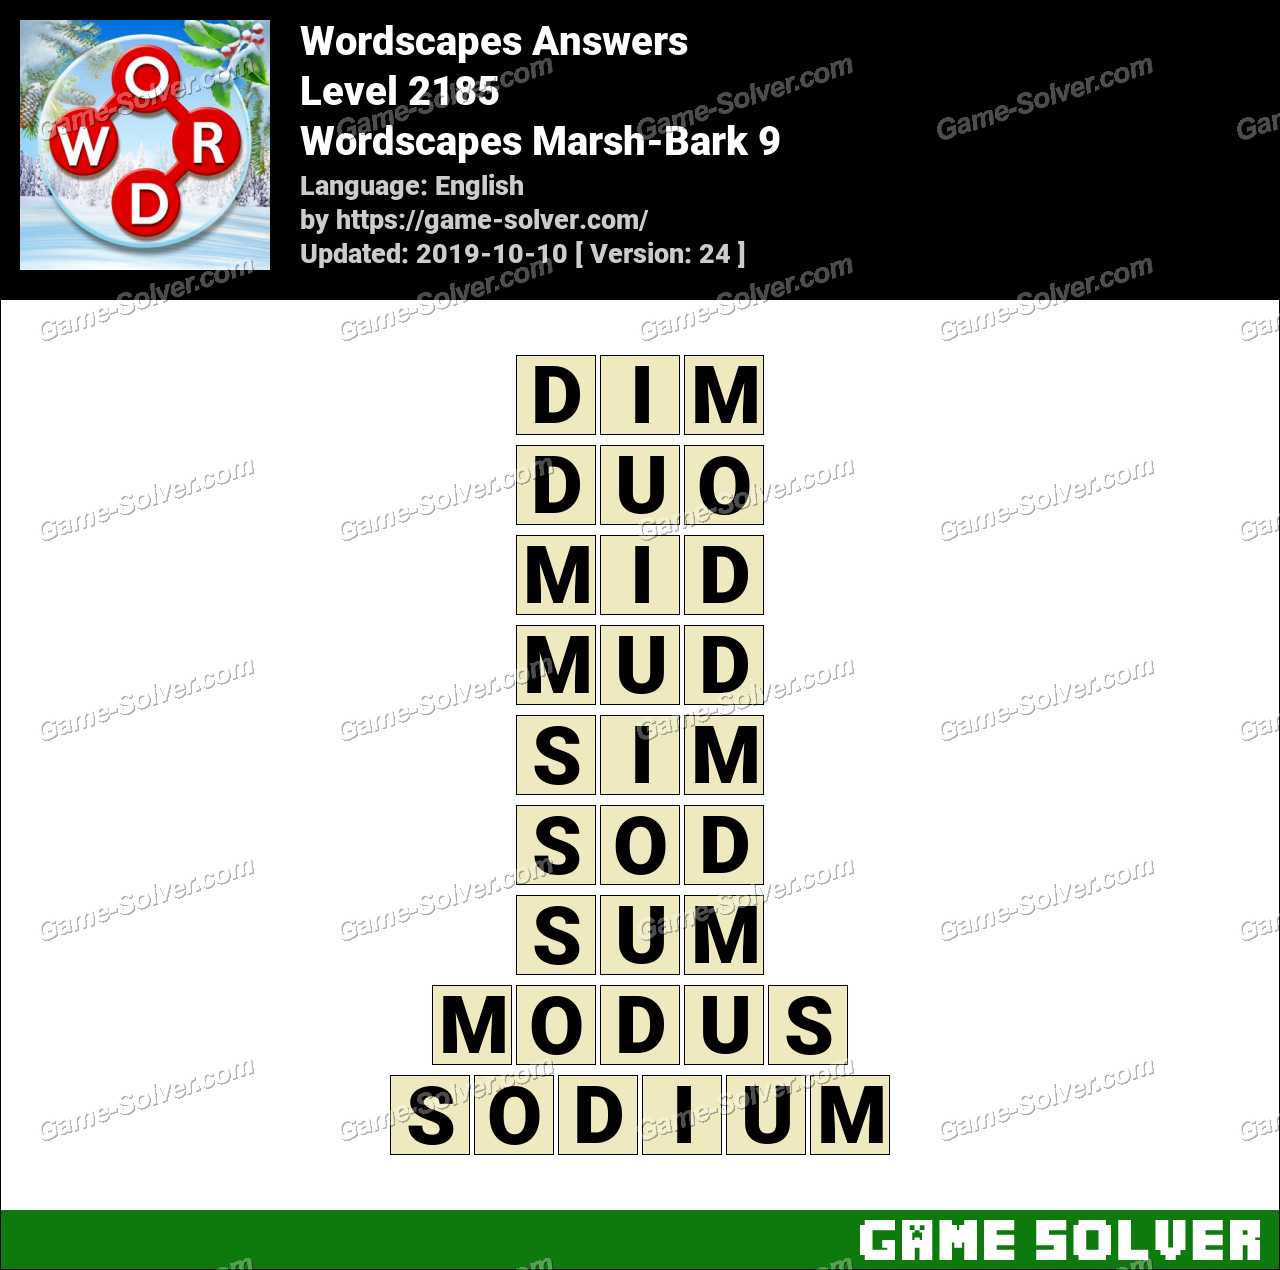 Wordscapes Marsh-Bark 9 Answers